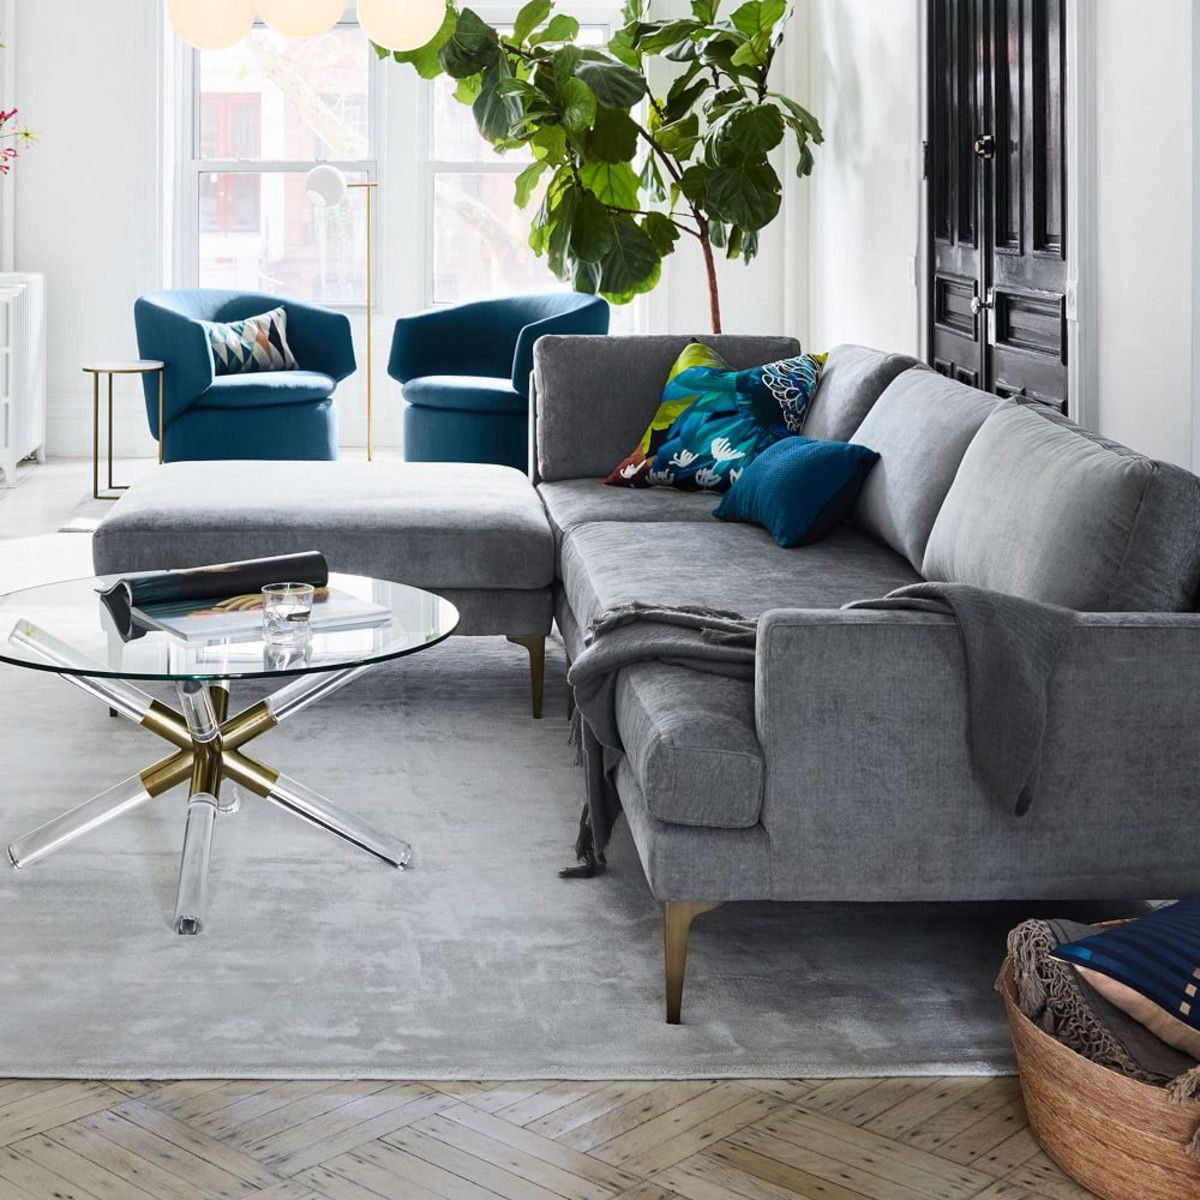 Andes 3 Piece Chaise Sectional Metal Distressed Velvet West Elm Uk West Elm Living Room Sectional Sofa Modern Sofa Sectional